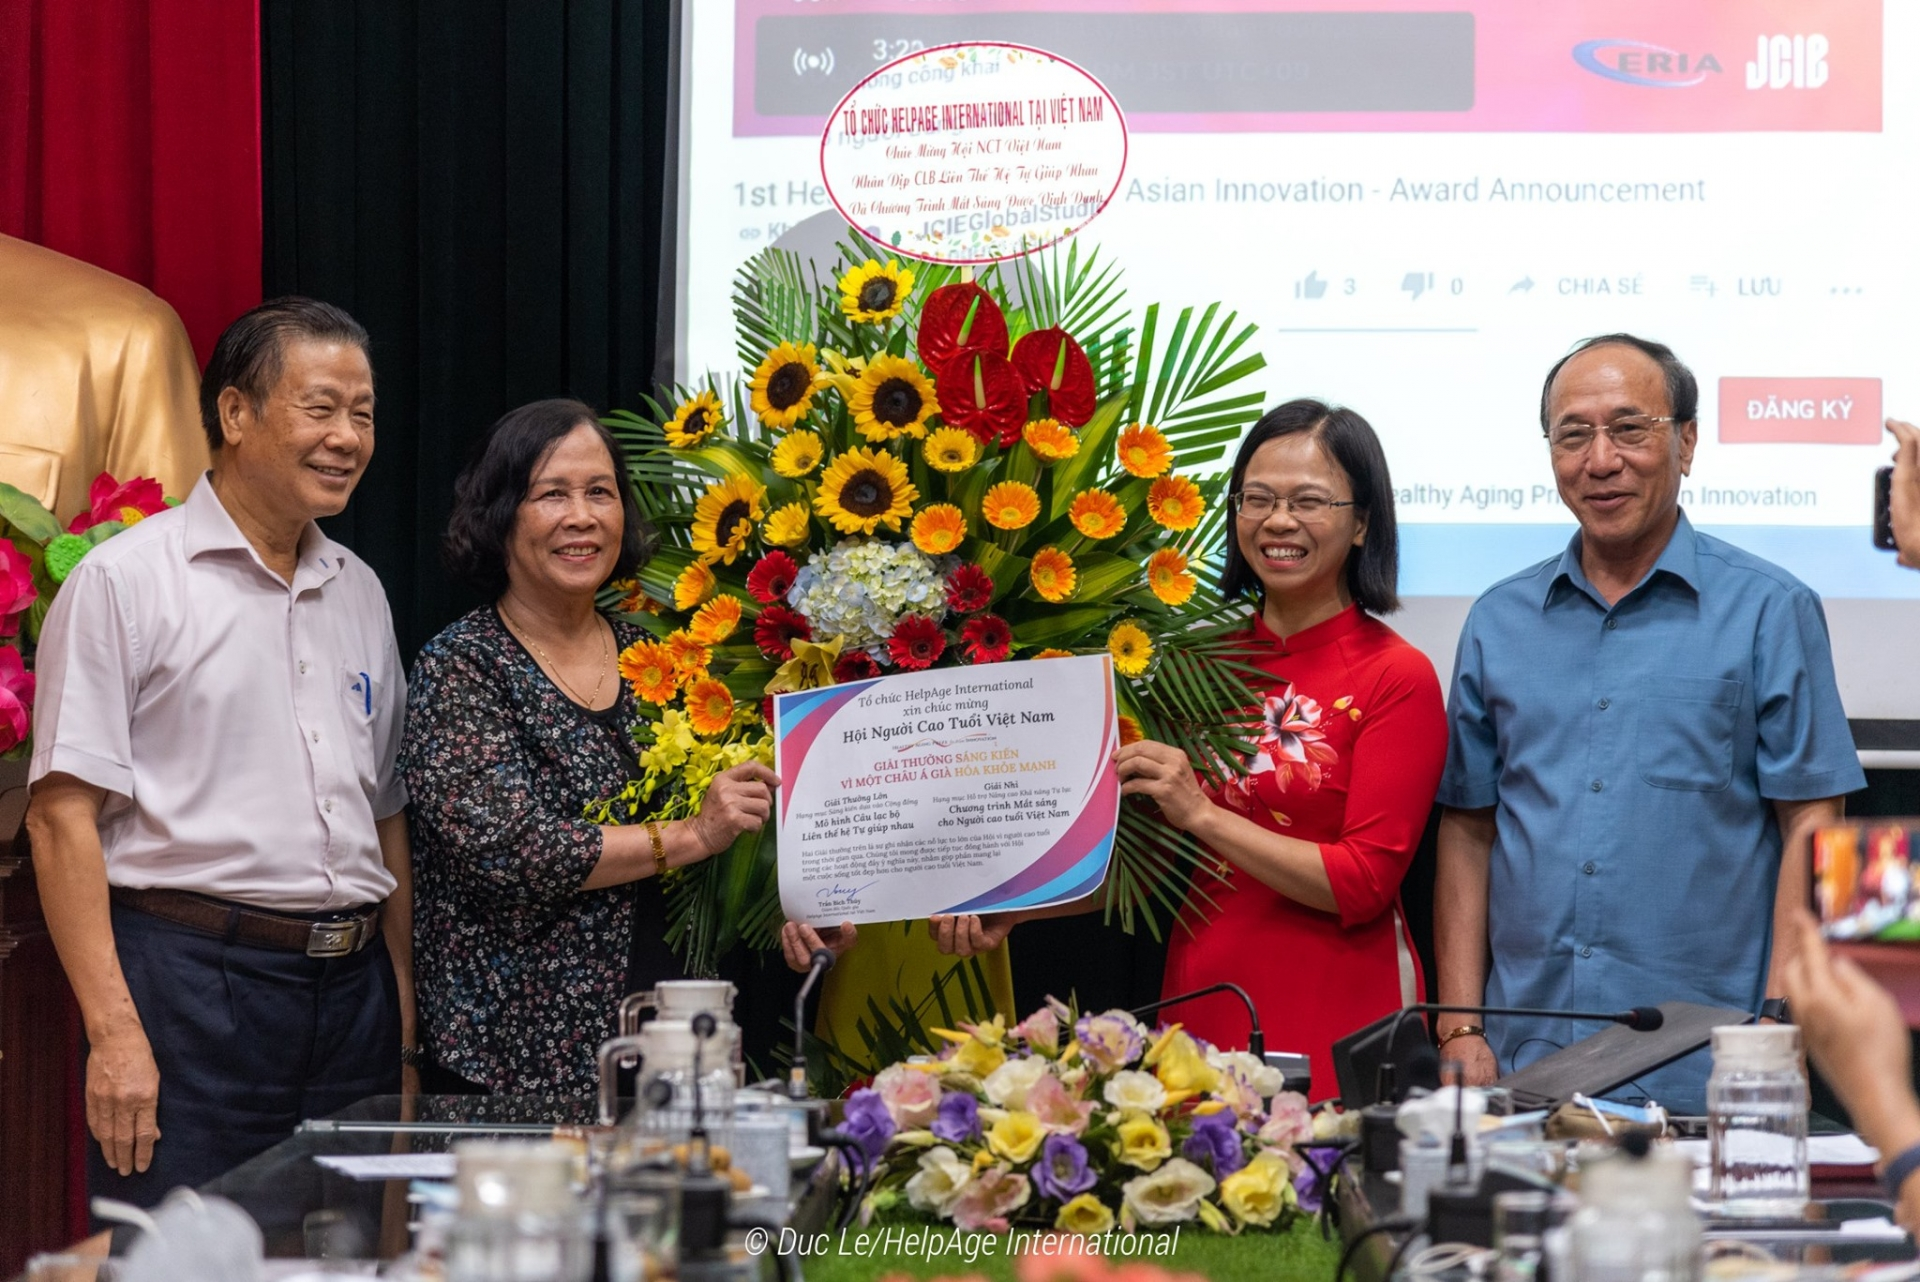 self helping intergenerational club model in vietnam became 2020 hapi grand prize winner